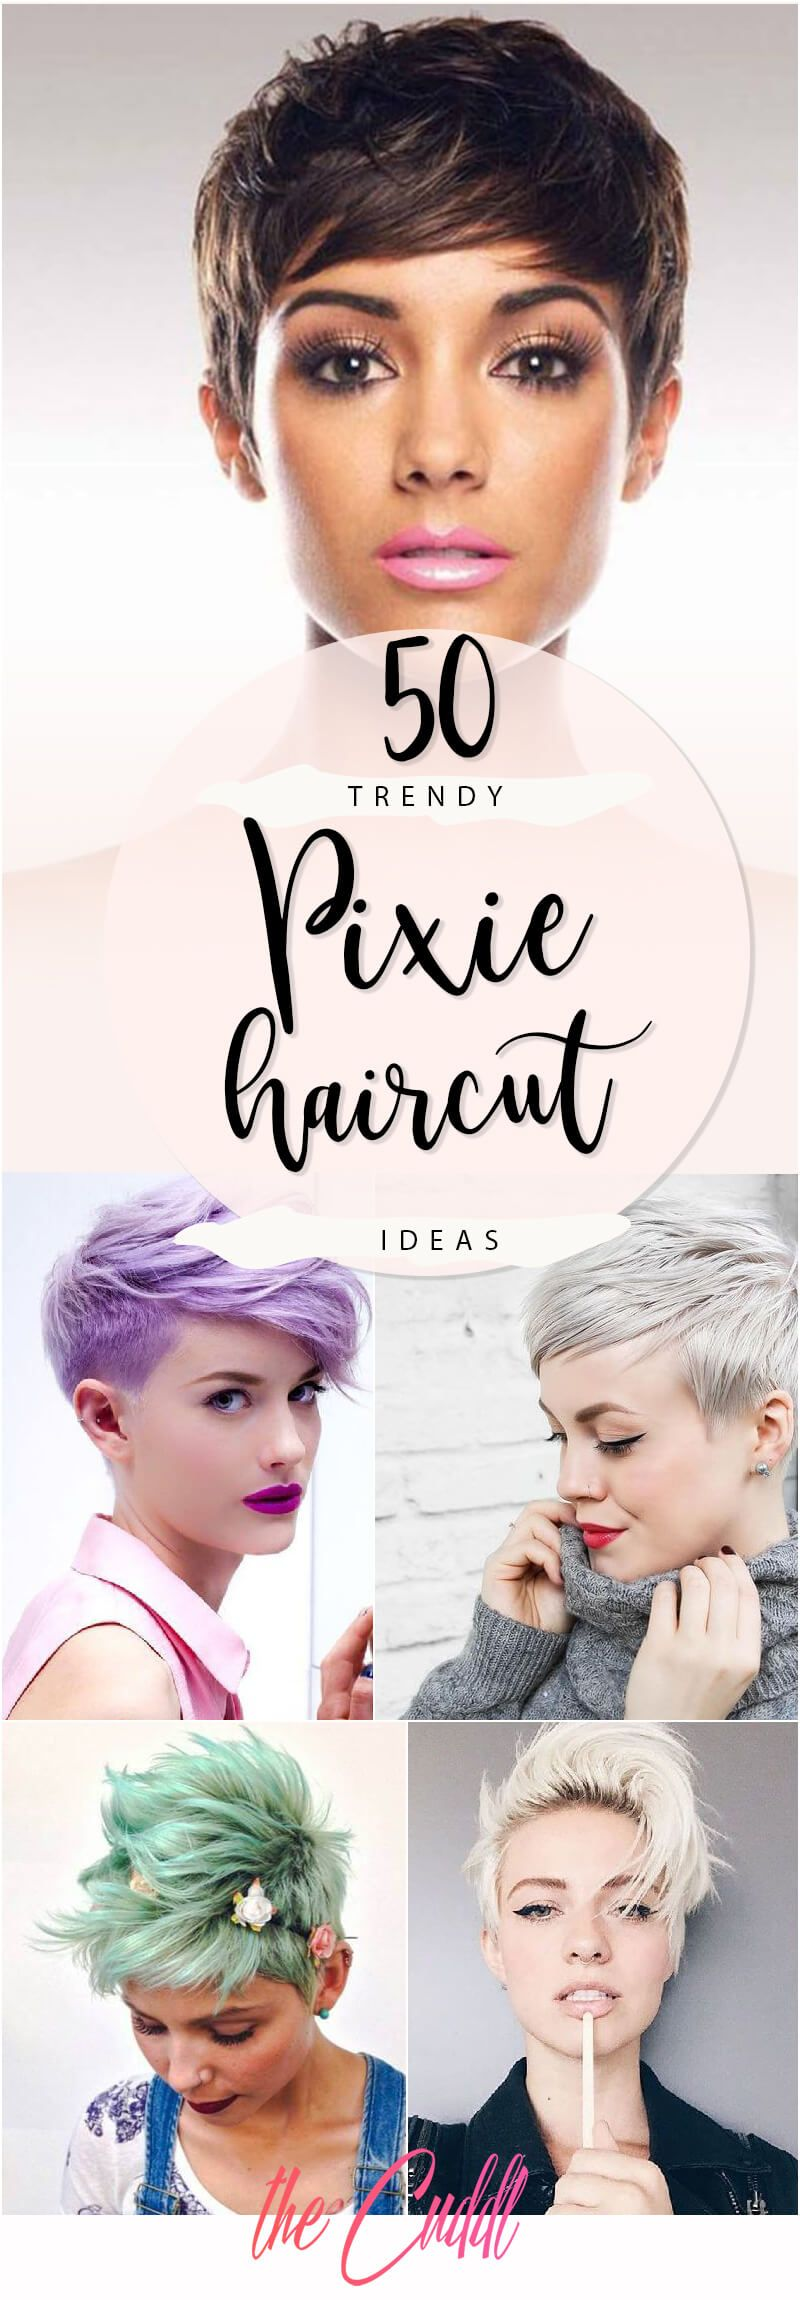 Best styling pixie haircut ideas in hair pinterest